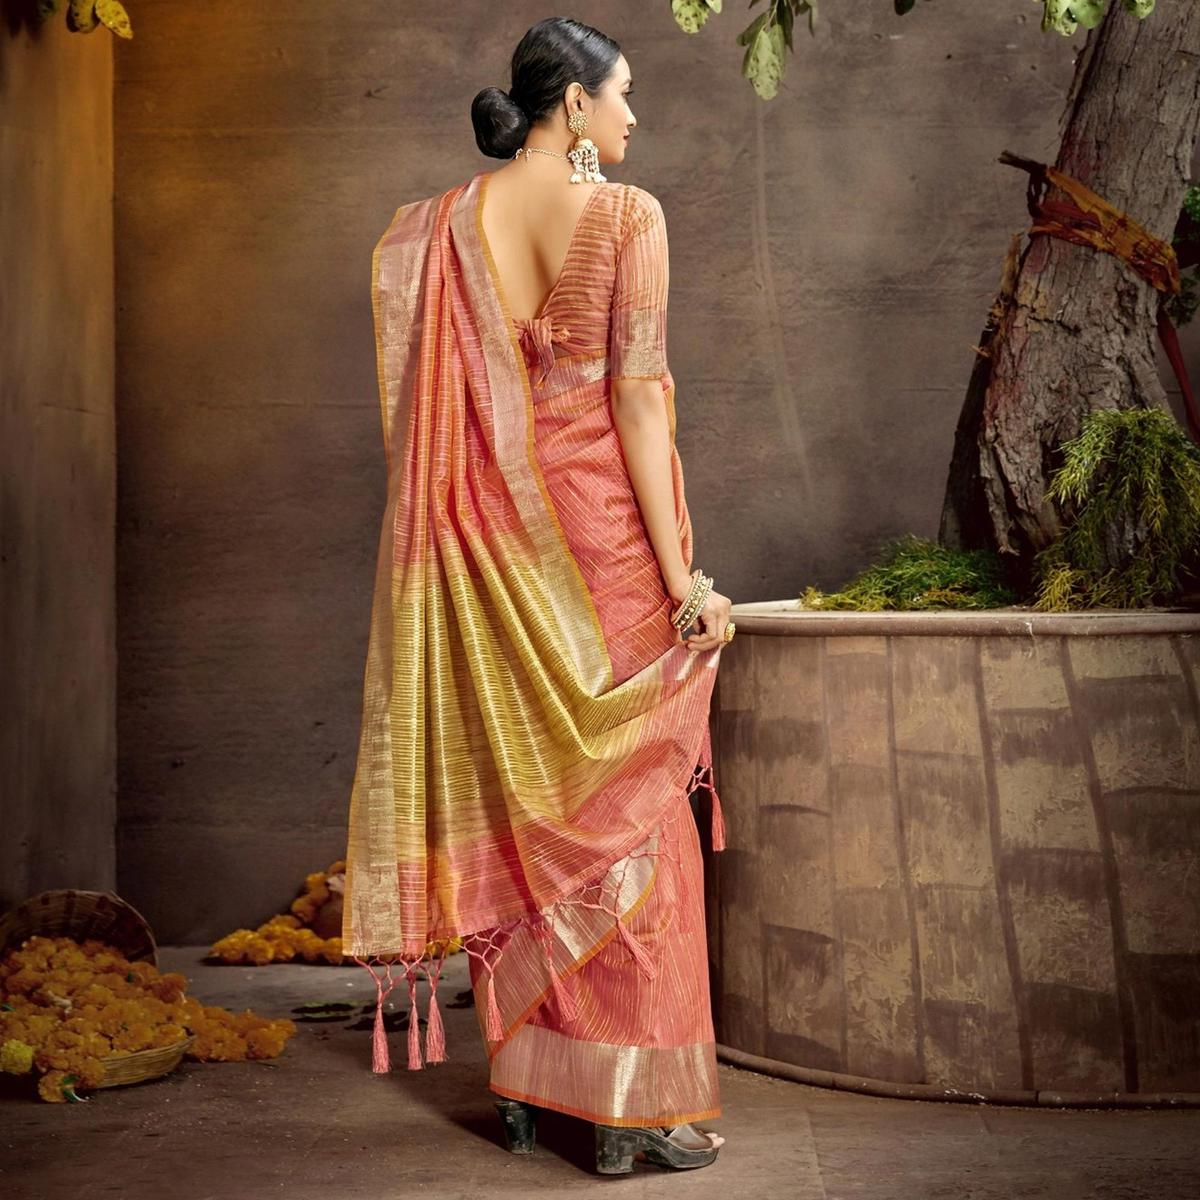 Triveni Peach Colored Cotton Party Wear Solid Saree With Blouse Piece